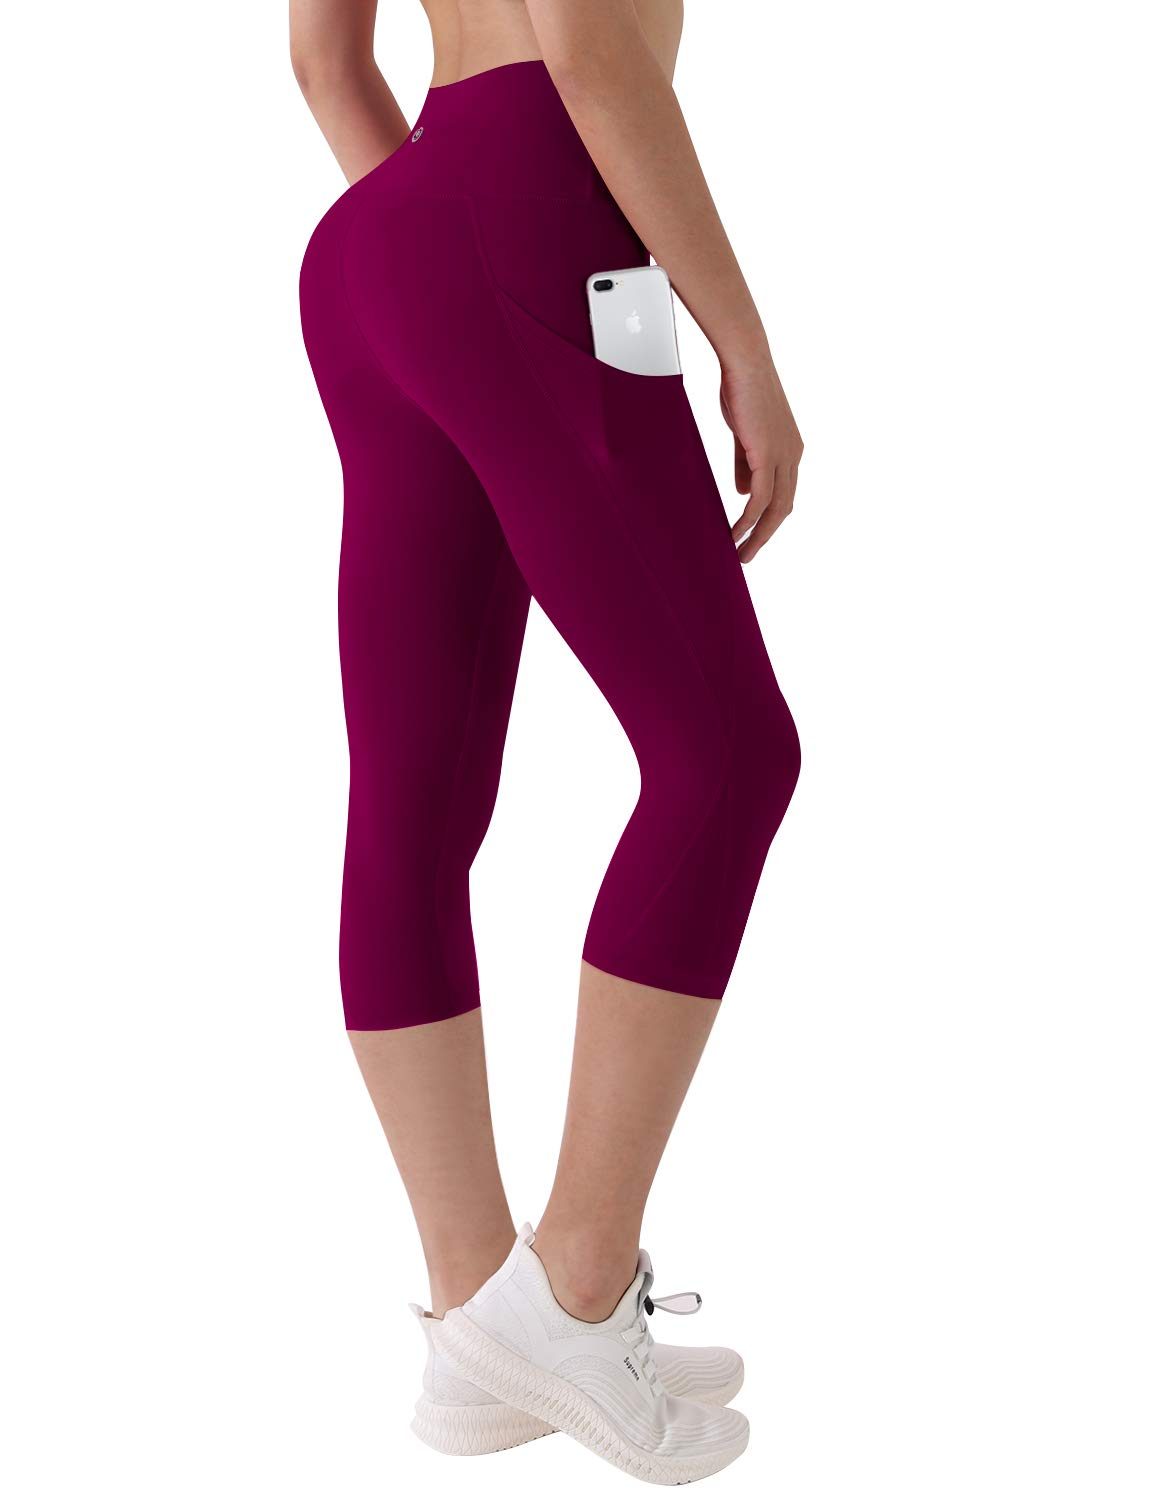 BUBBLELIME High Compression Yoga Capris Out Pocket Running Capris High Waist UPF30+ Non See-Through Fabric